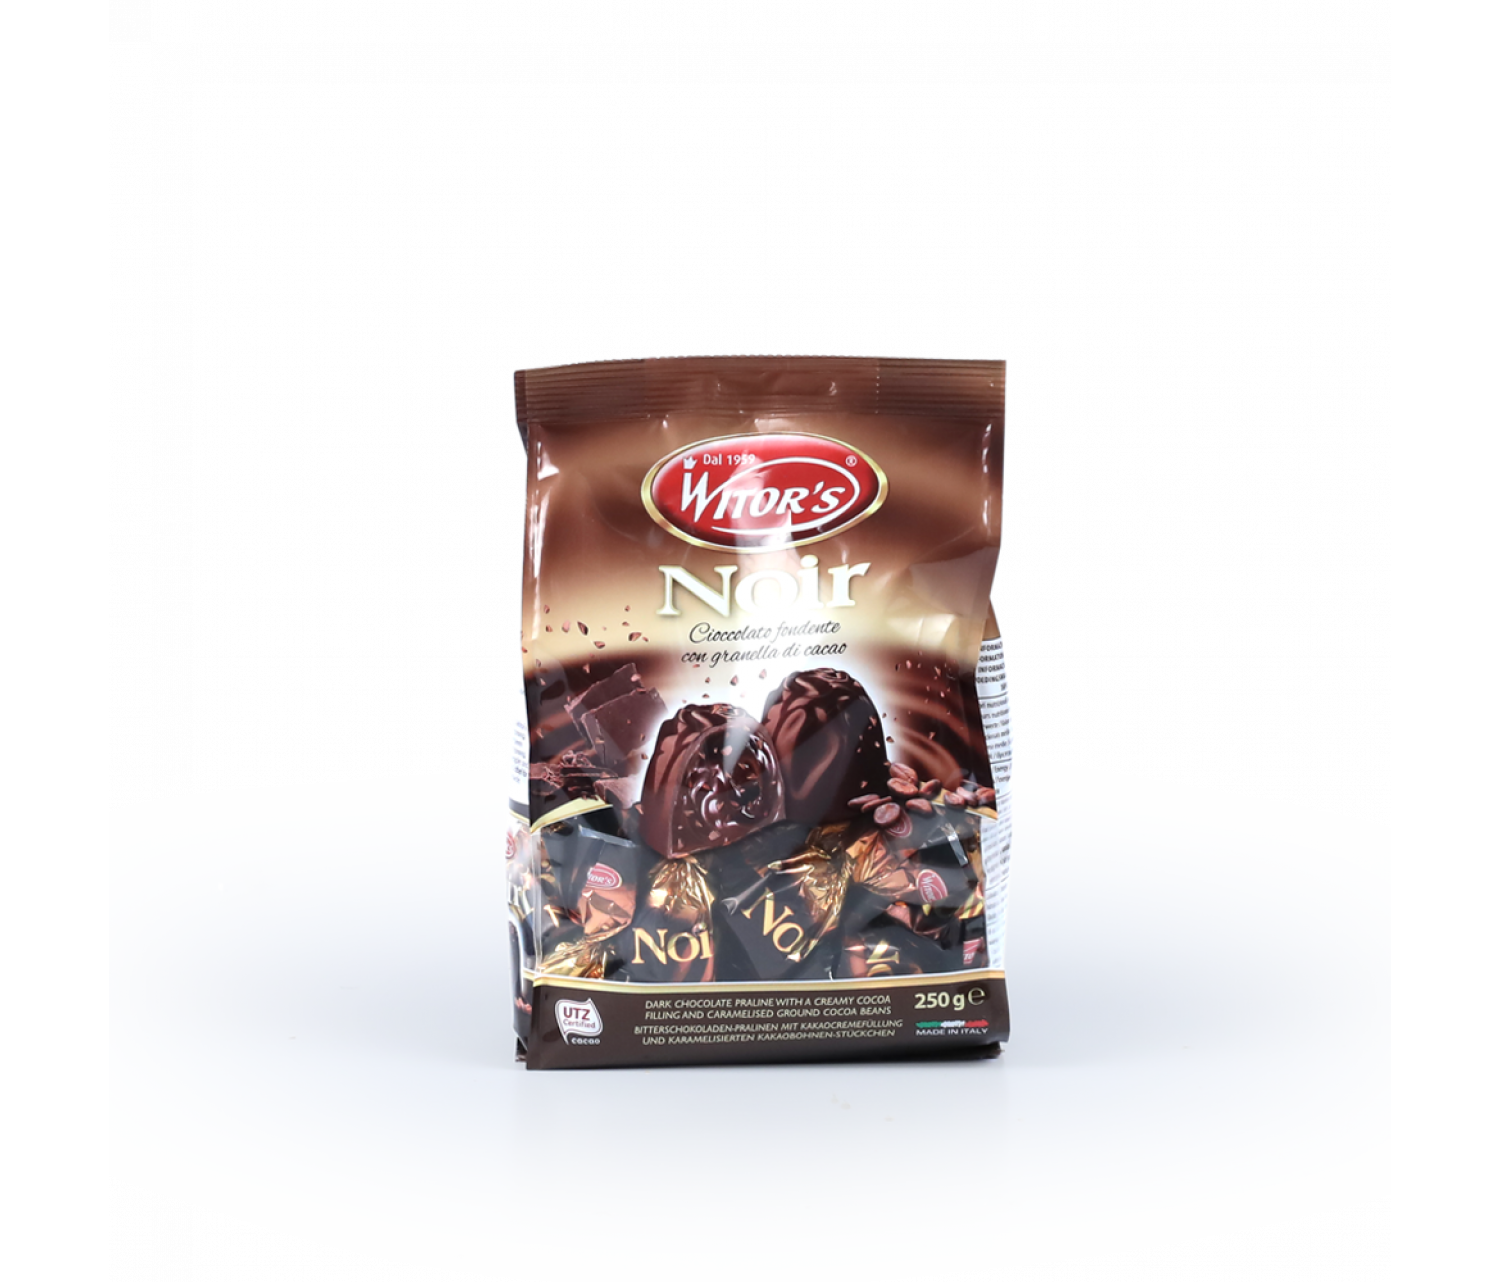 Bombons xocolata negre Witor's 250g